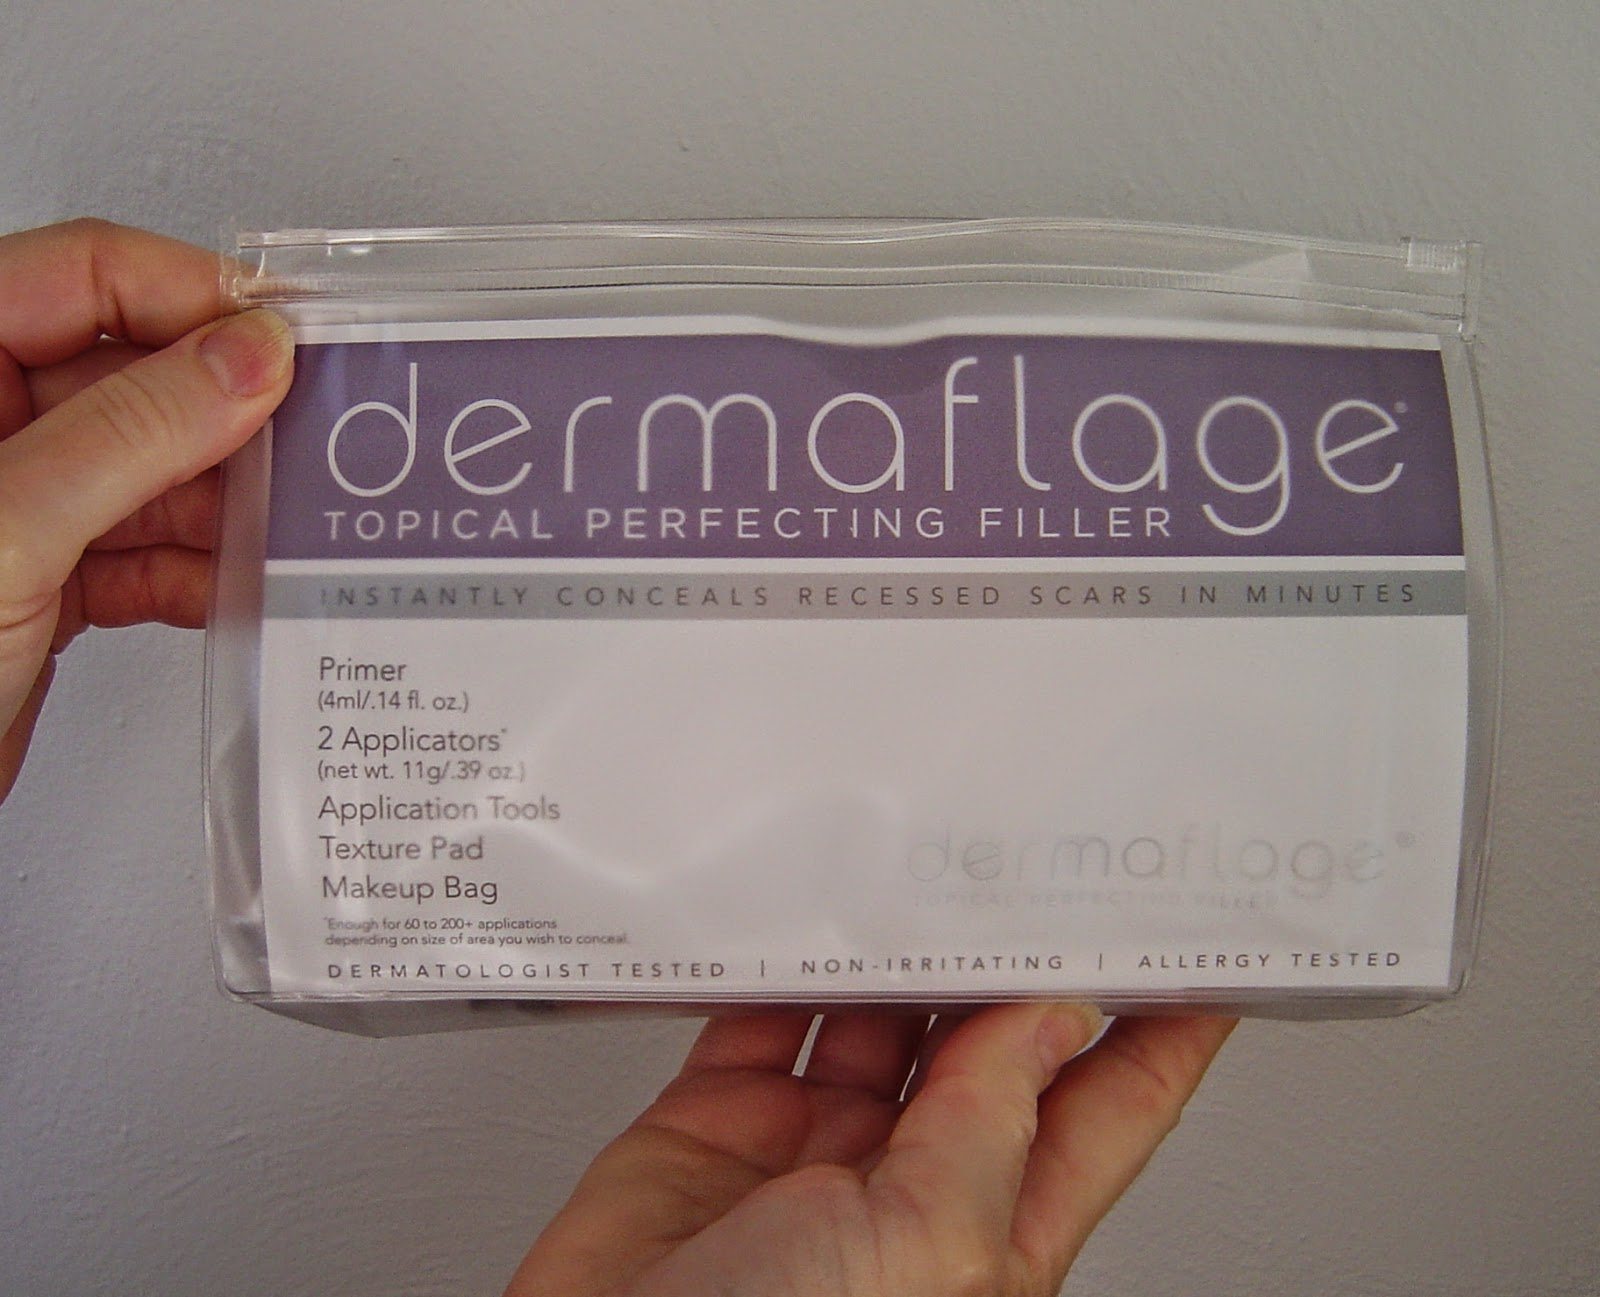 Dermaflage Topical Perfecting Filler Kit.jpeg